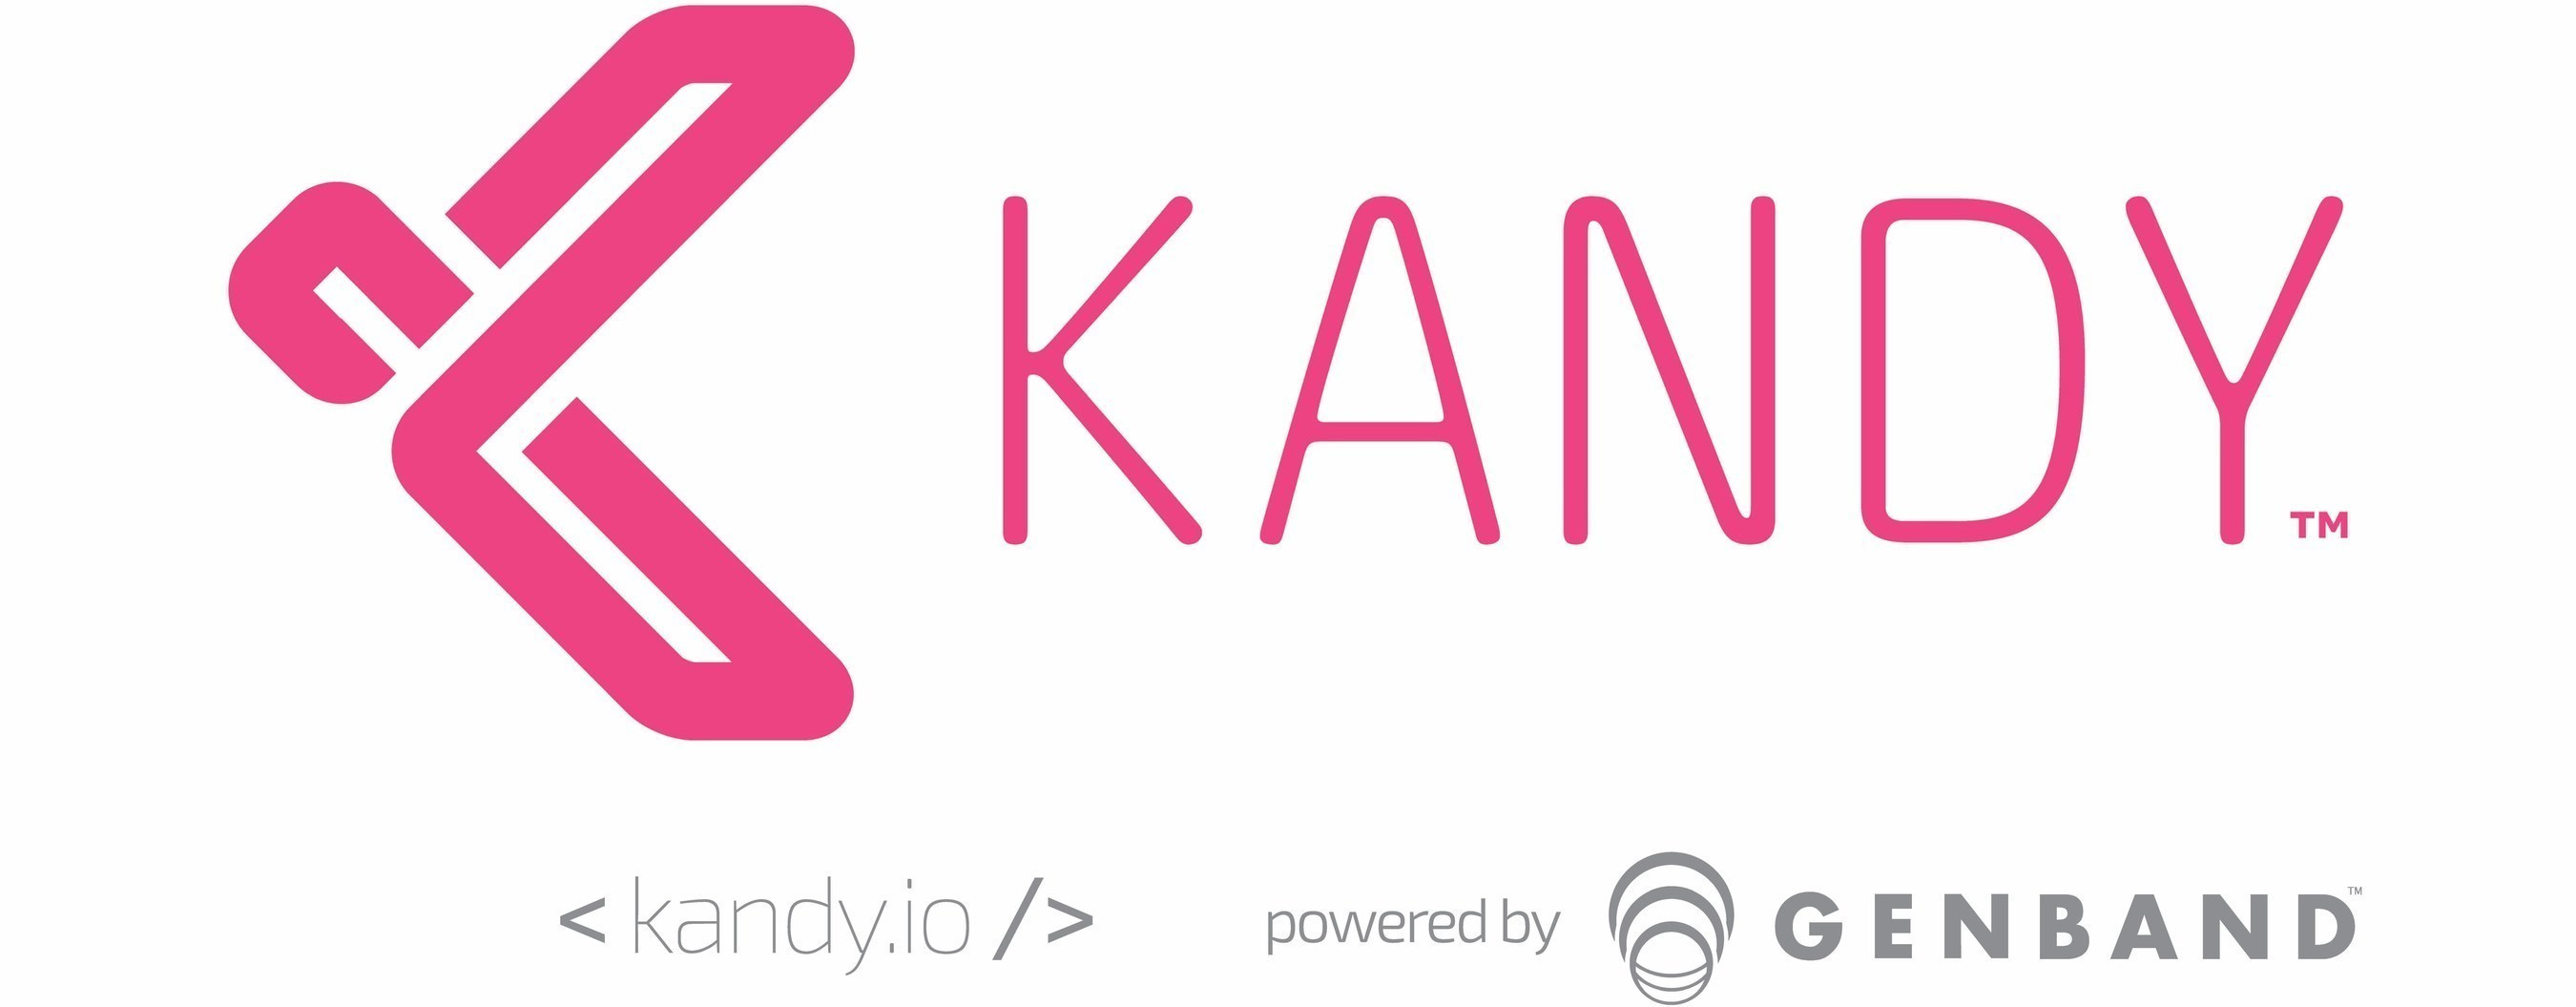 MBODY360 Selects Kandy to Enhance Real Time Secure Multimedia Messaging into Powerful Mobile Practice Management Platform for Integrative and Functional Health and Wellne